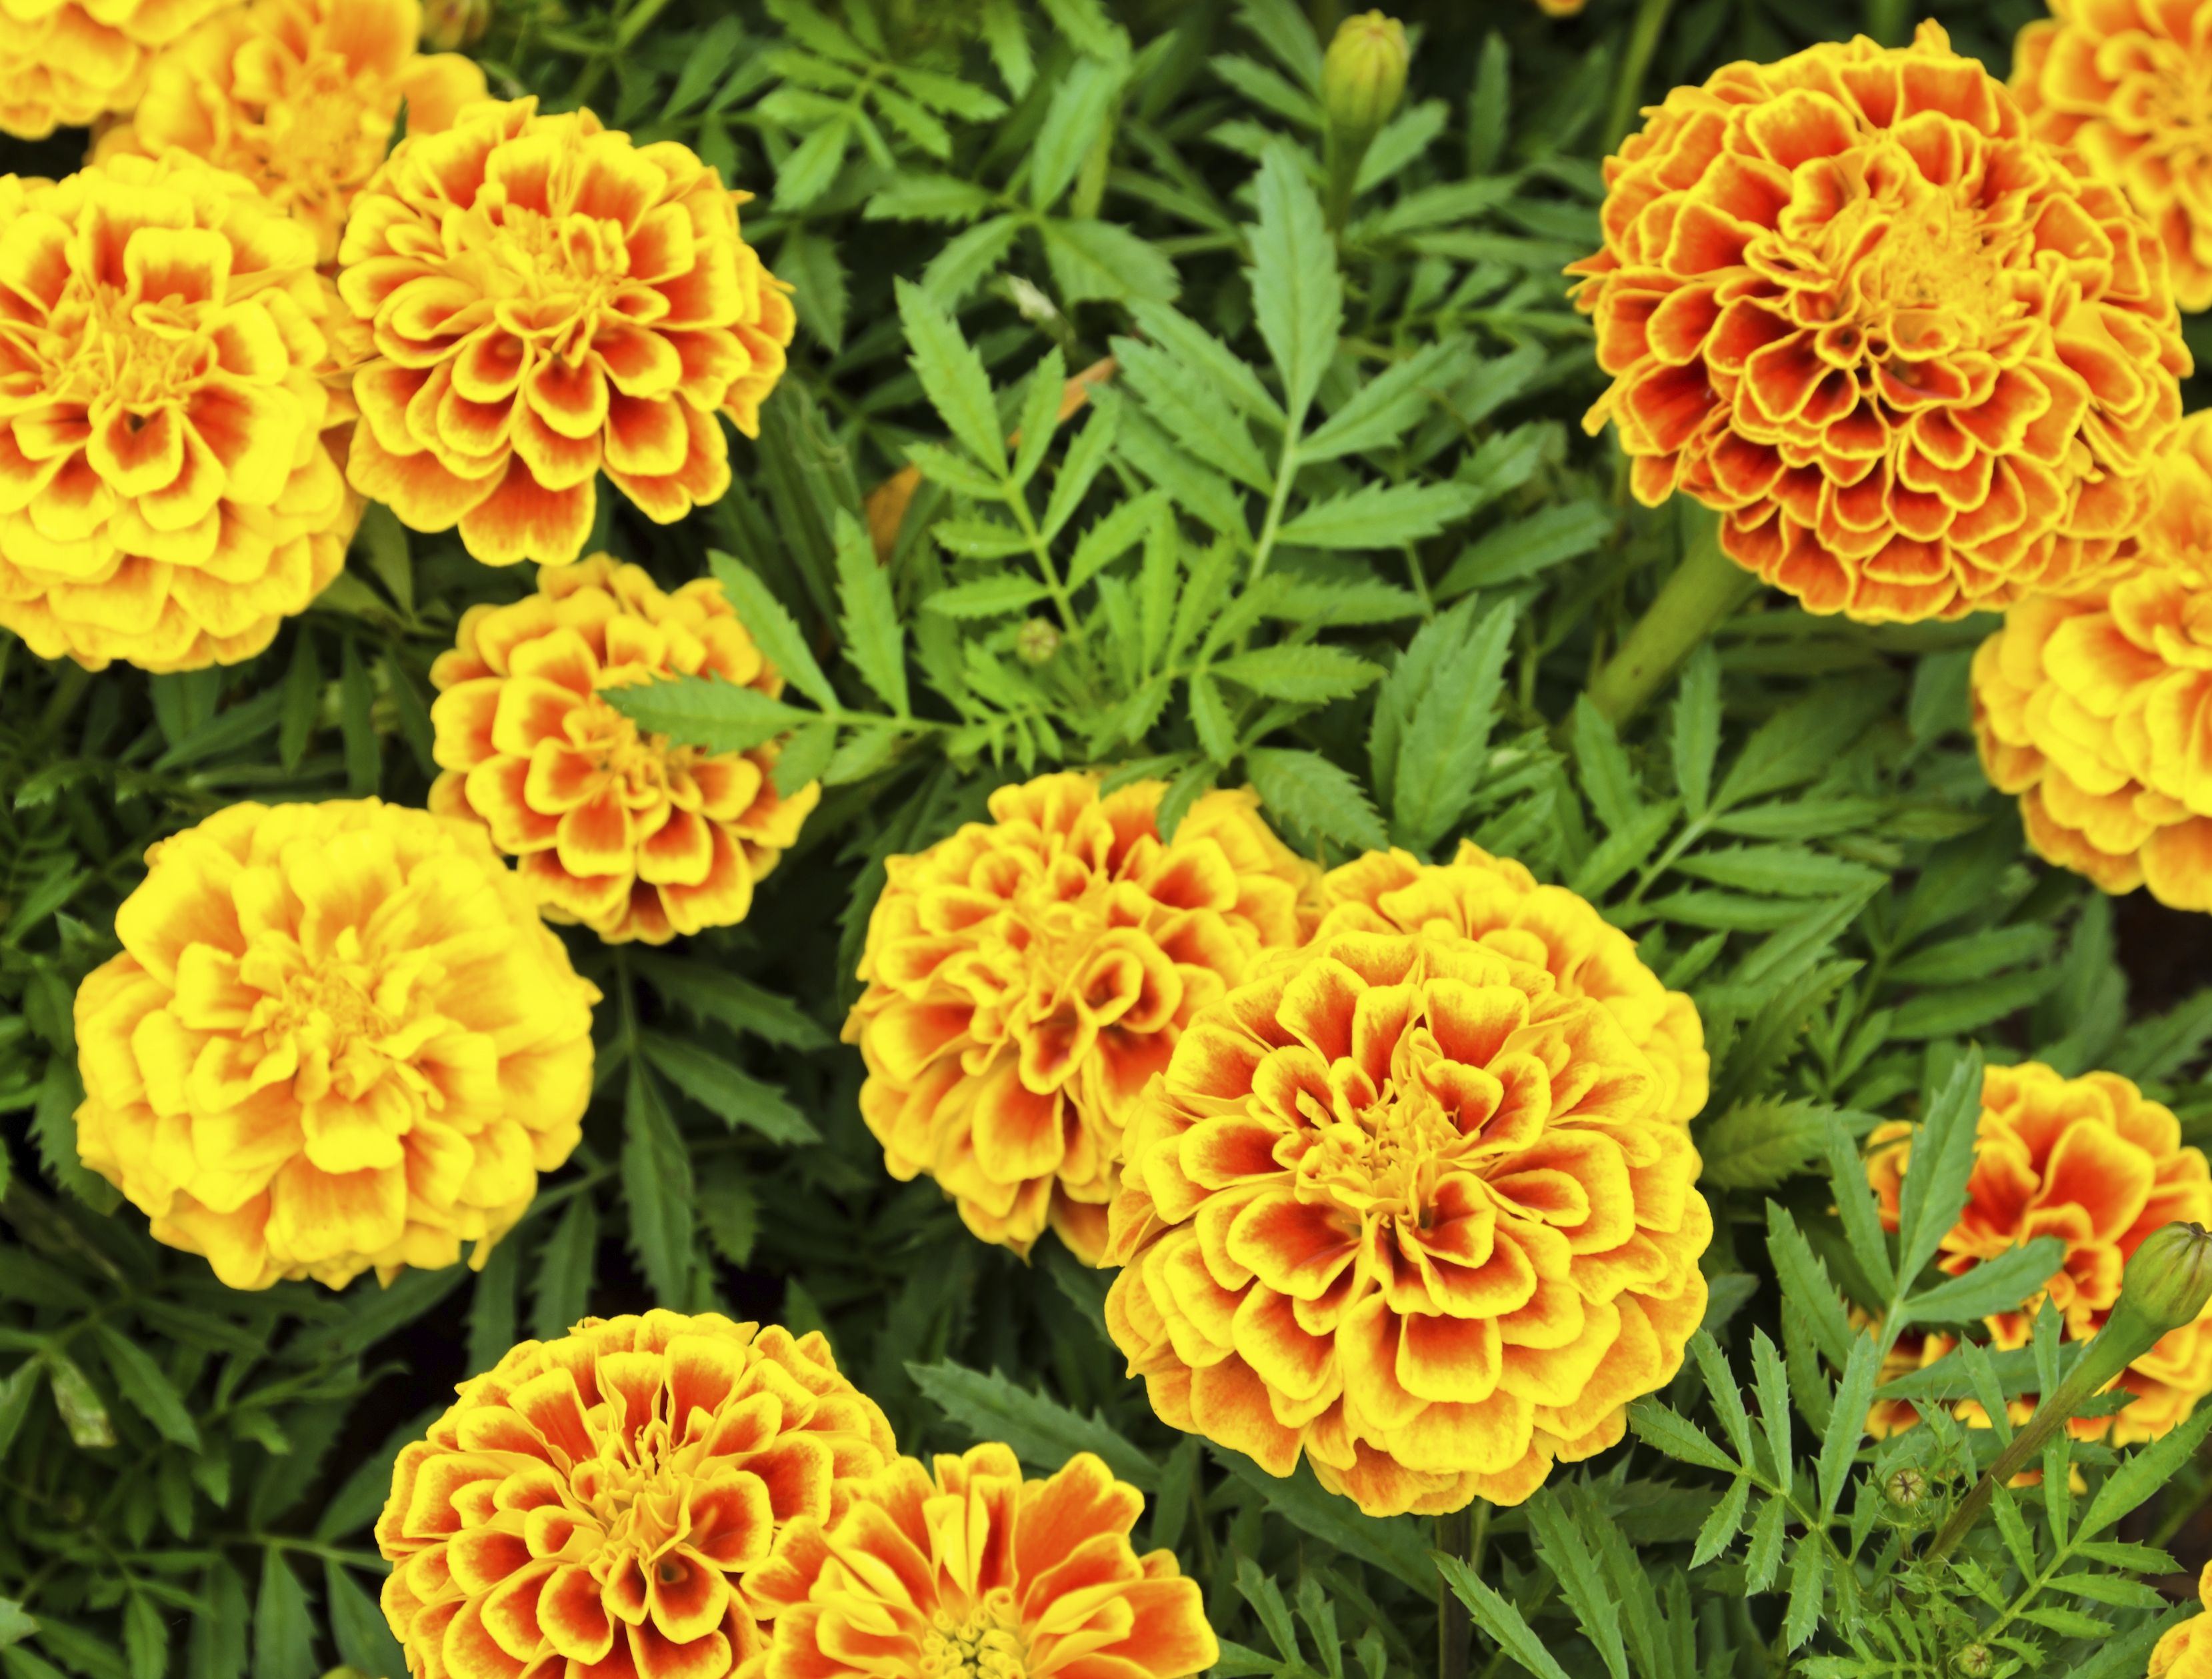 How to Make Chamomile Oil Marigold flower, Calendula